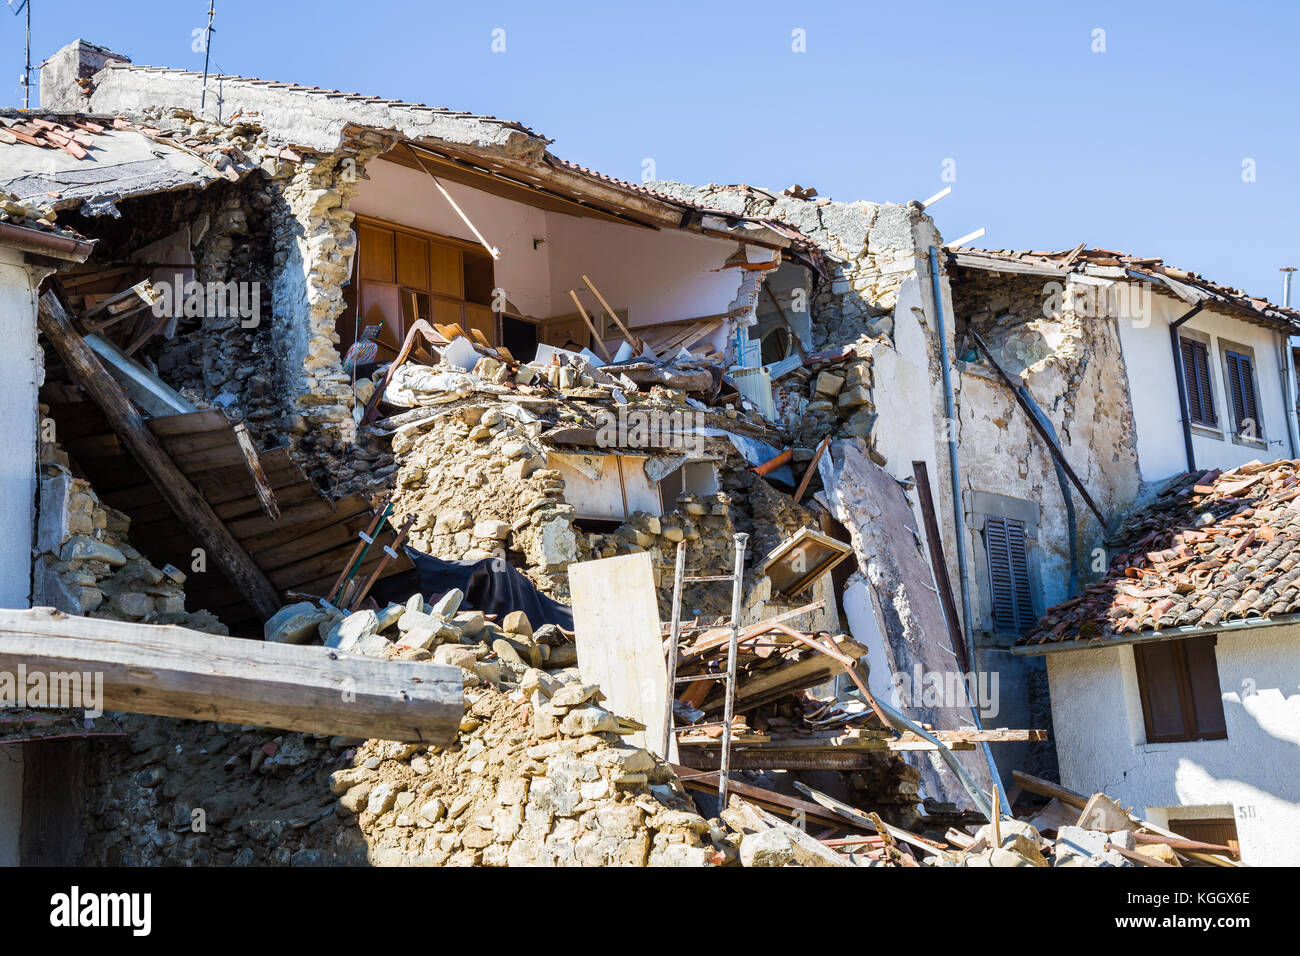 Prato of Amatrice,Italy. 29 April 2017. The damage caused by the earthquake that hit central Italy in 2016. Prato Stock Photo